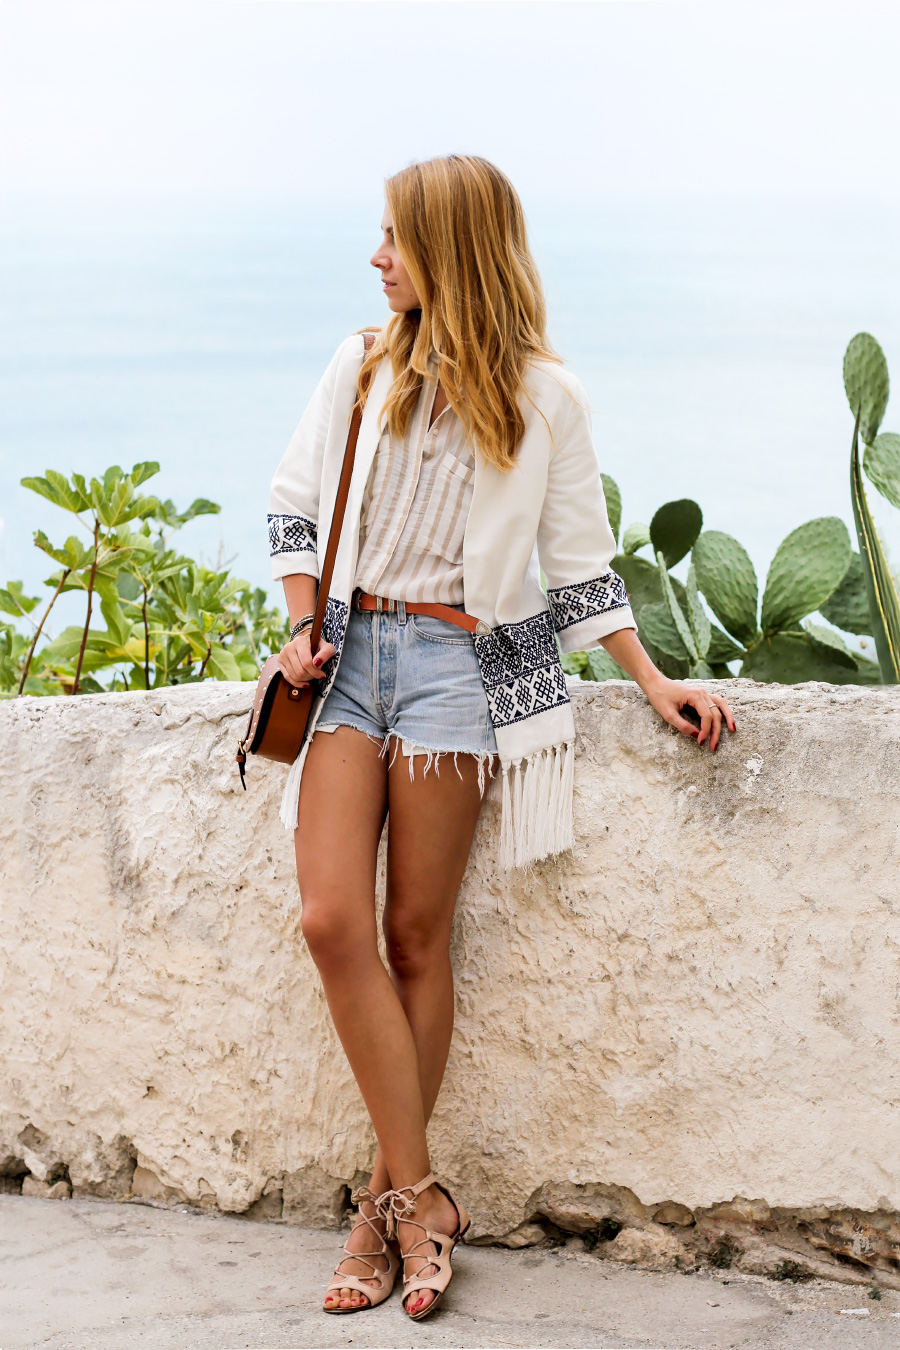 embroidered fringe kimono, vintage Levis cutoffs, tan accessories, lace-up sandals